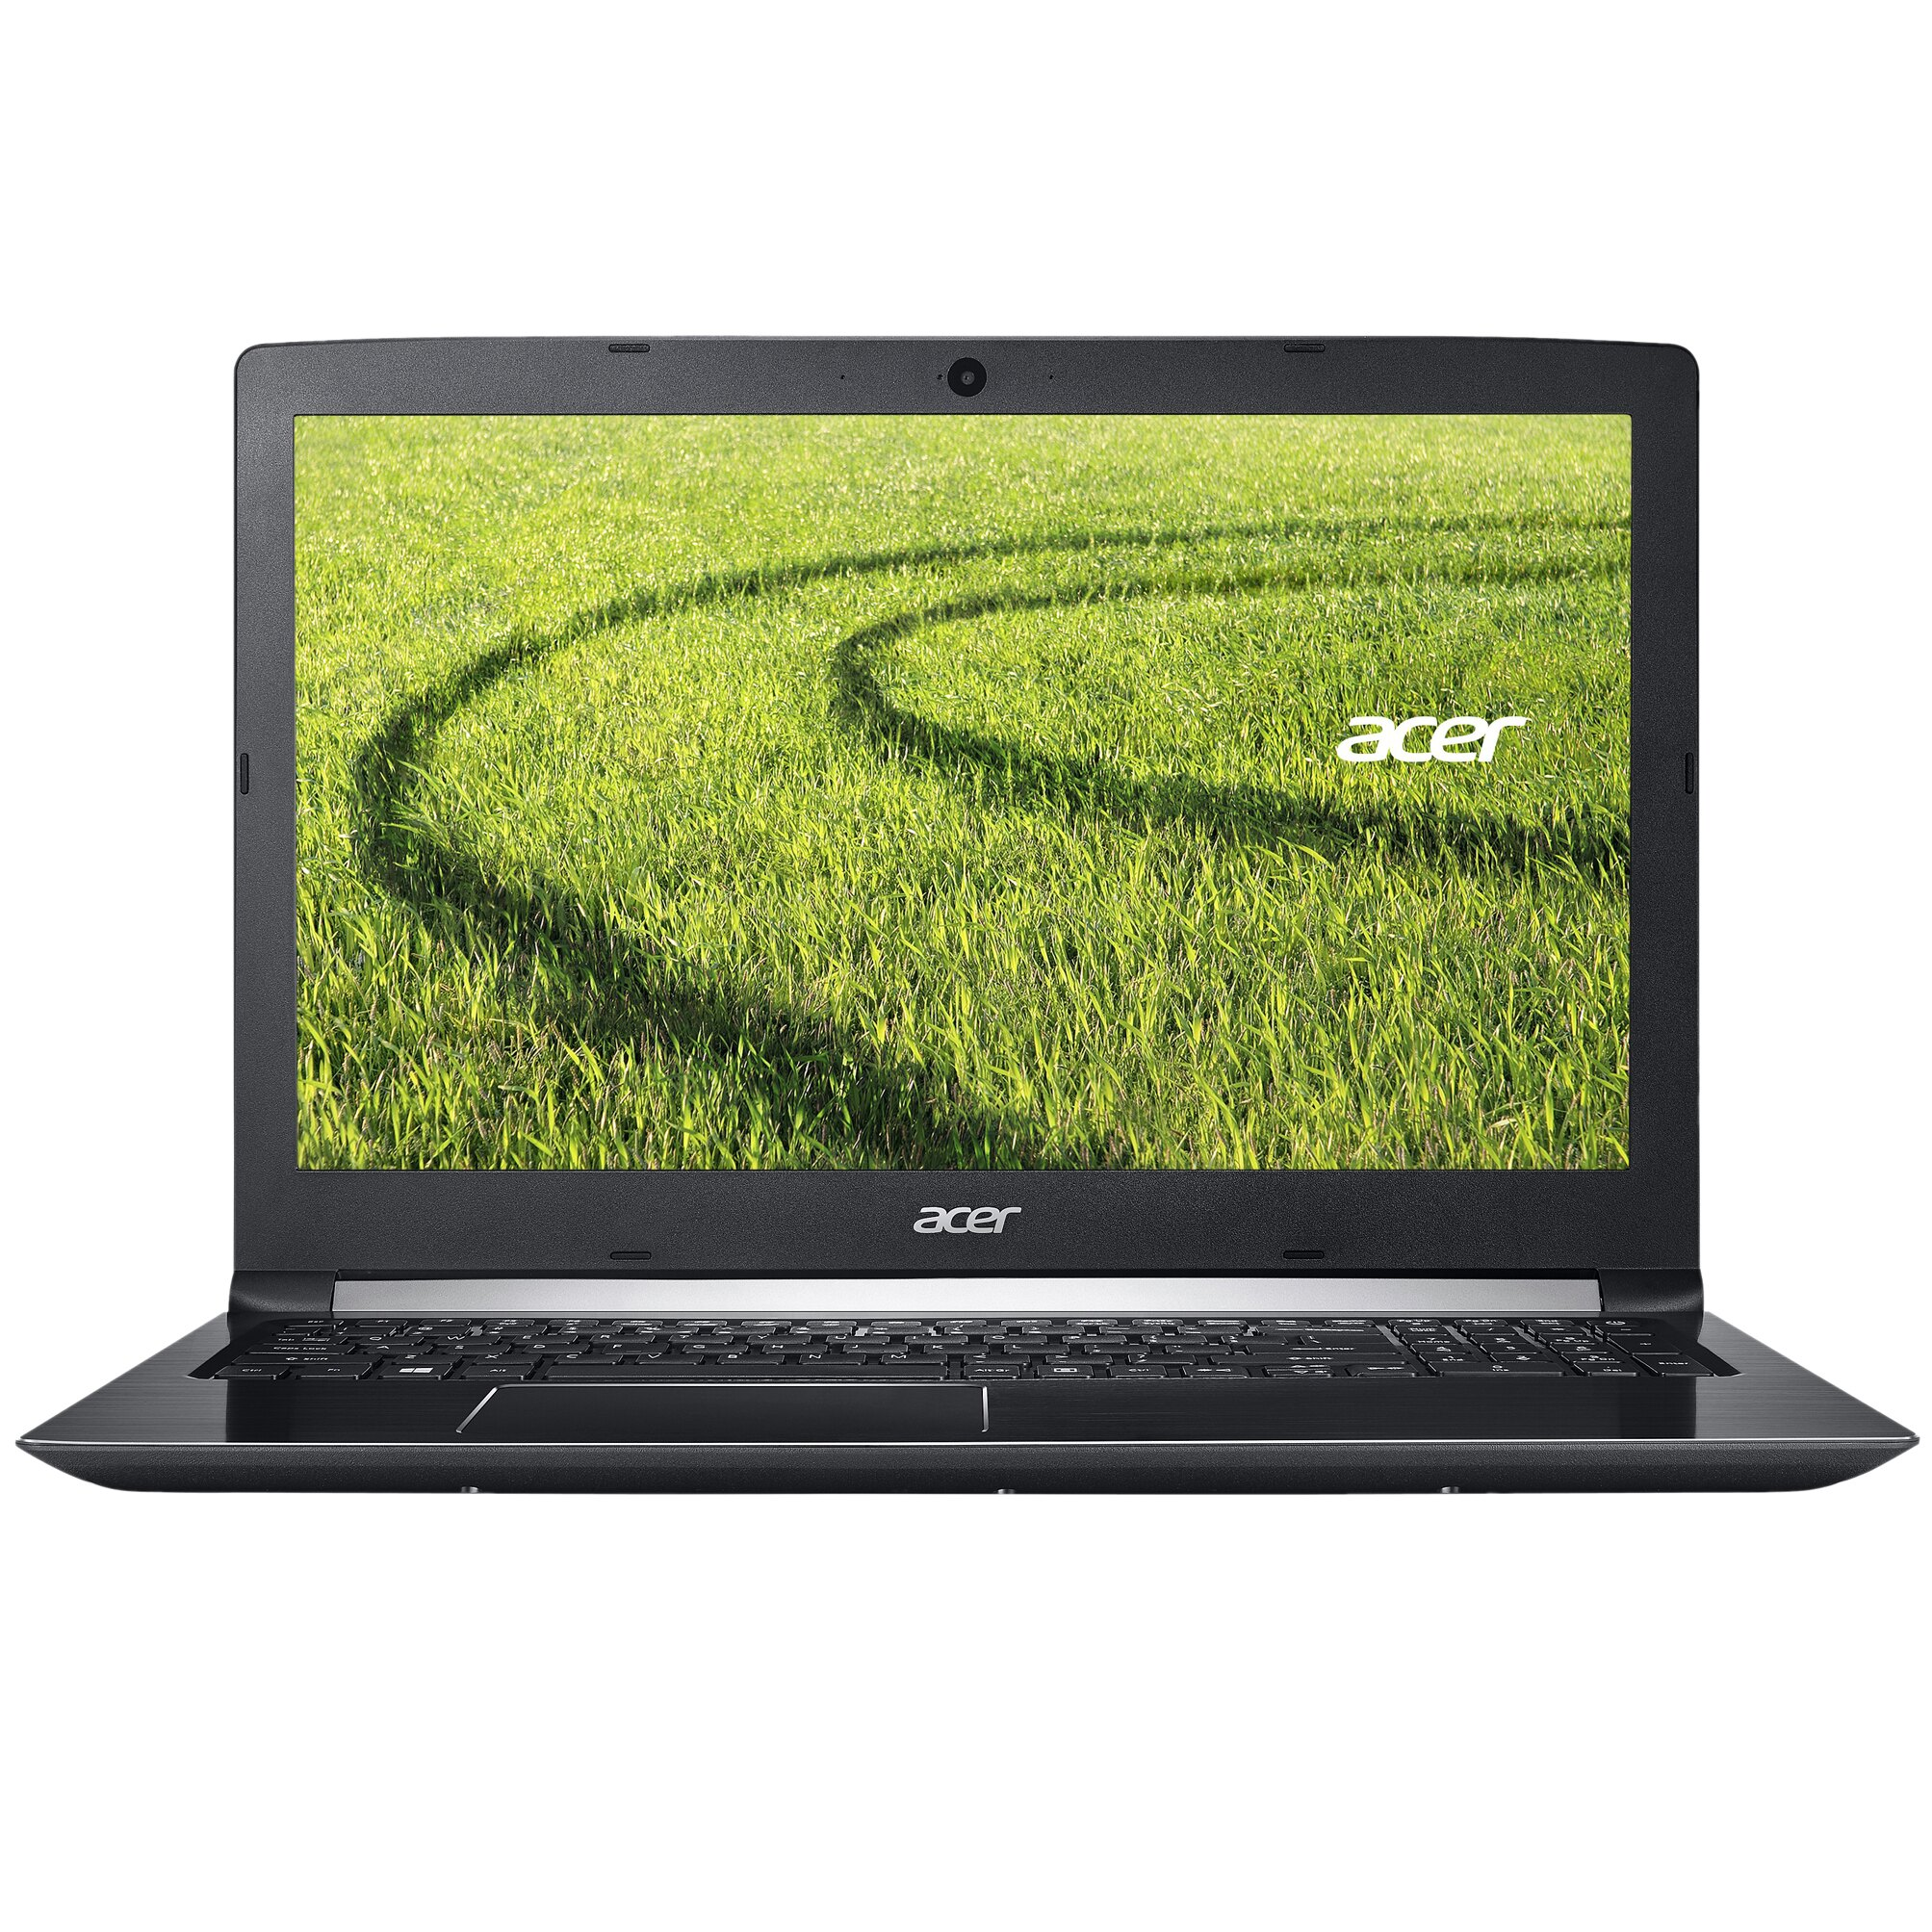 "Acer Aspire 5 15.6"" Laptop Intel Core i5 2.5GHz 8GB Ram 1TB HDD Windows 10 0"